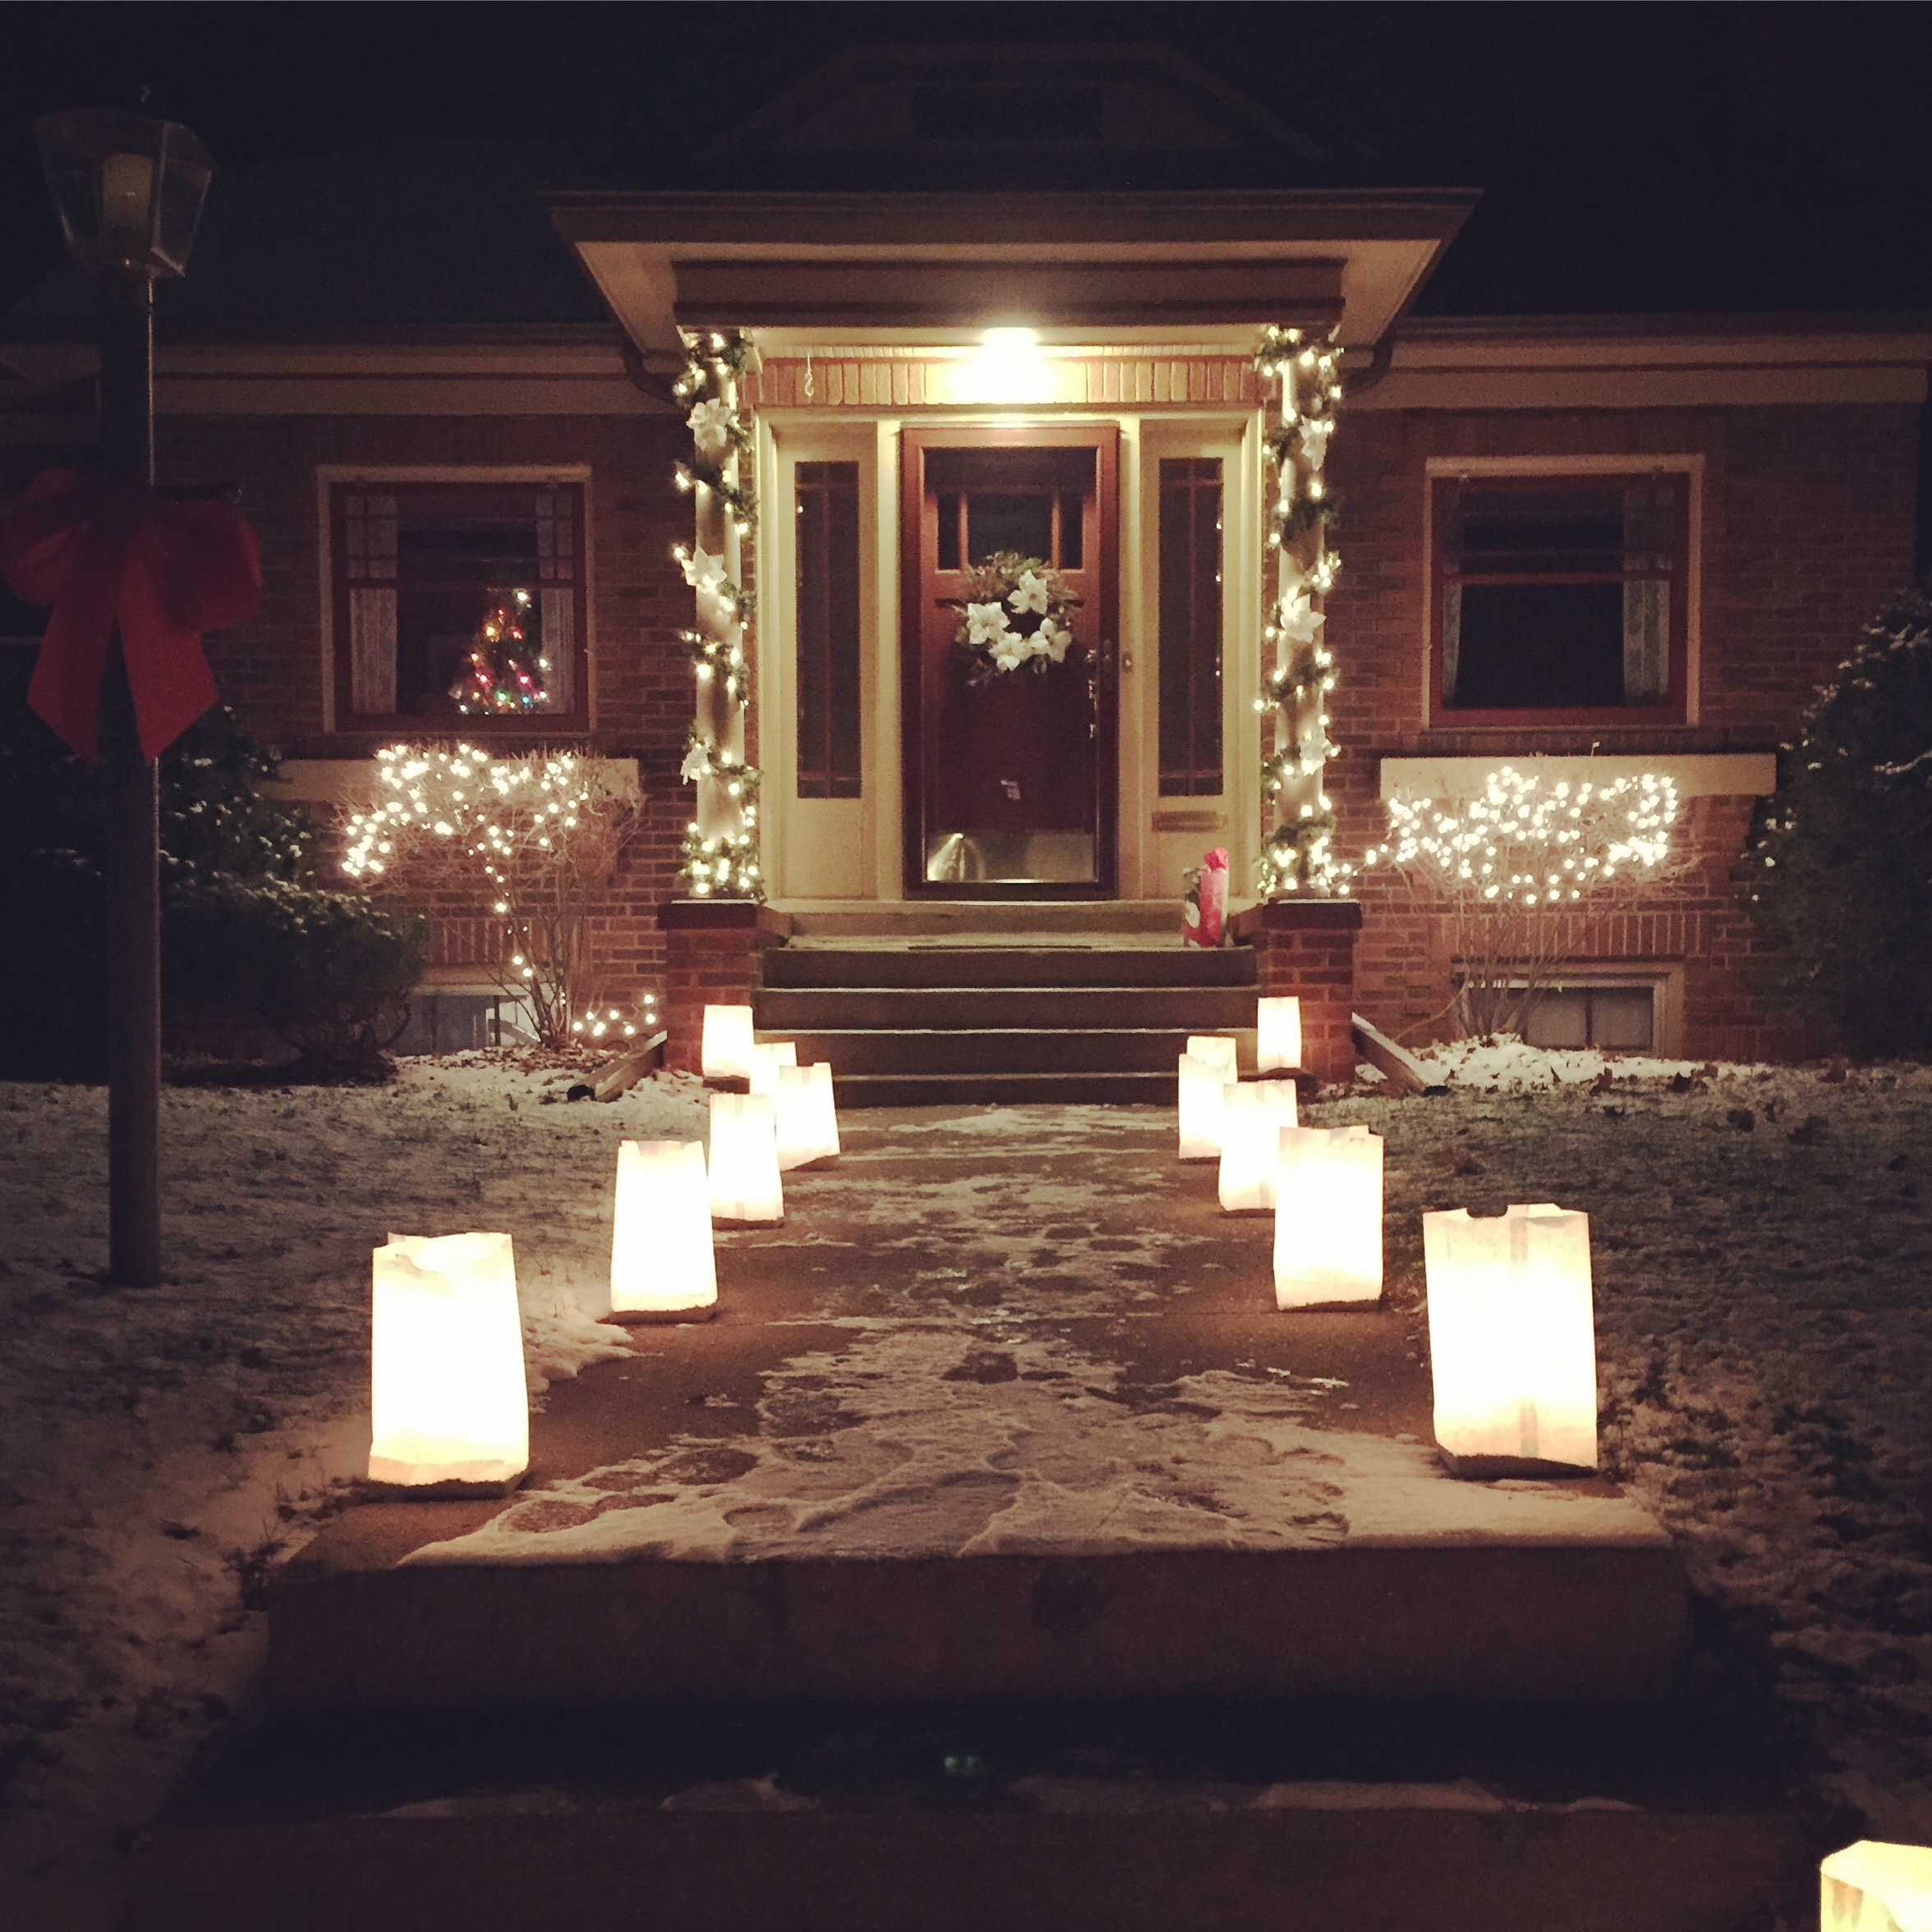 Our little bungalow on our neighborhood's Luminary Night.